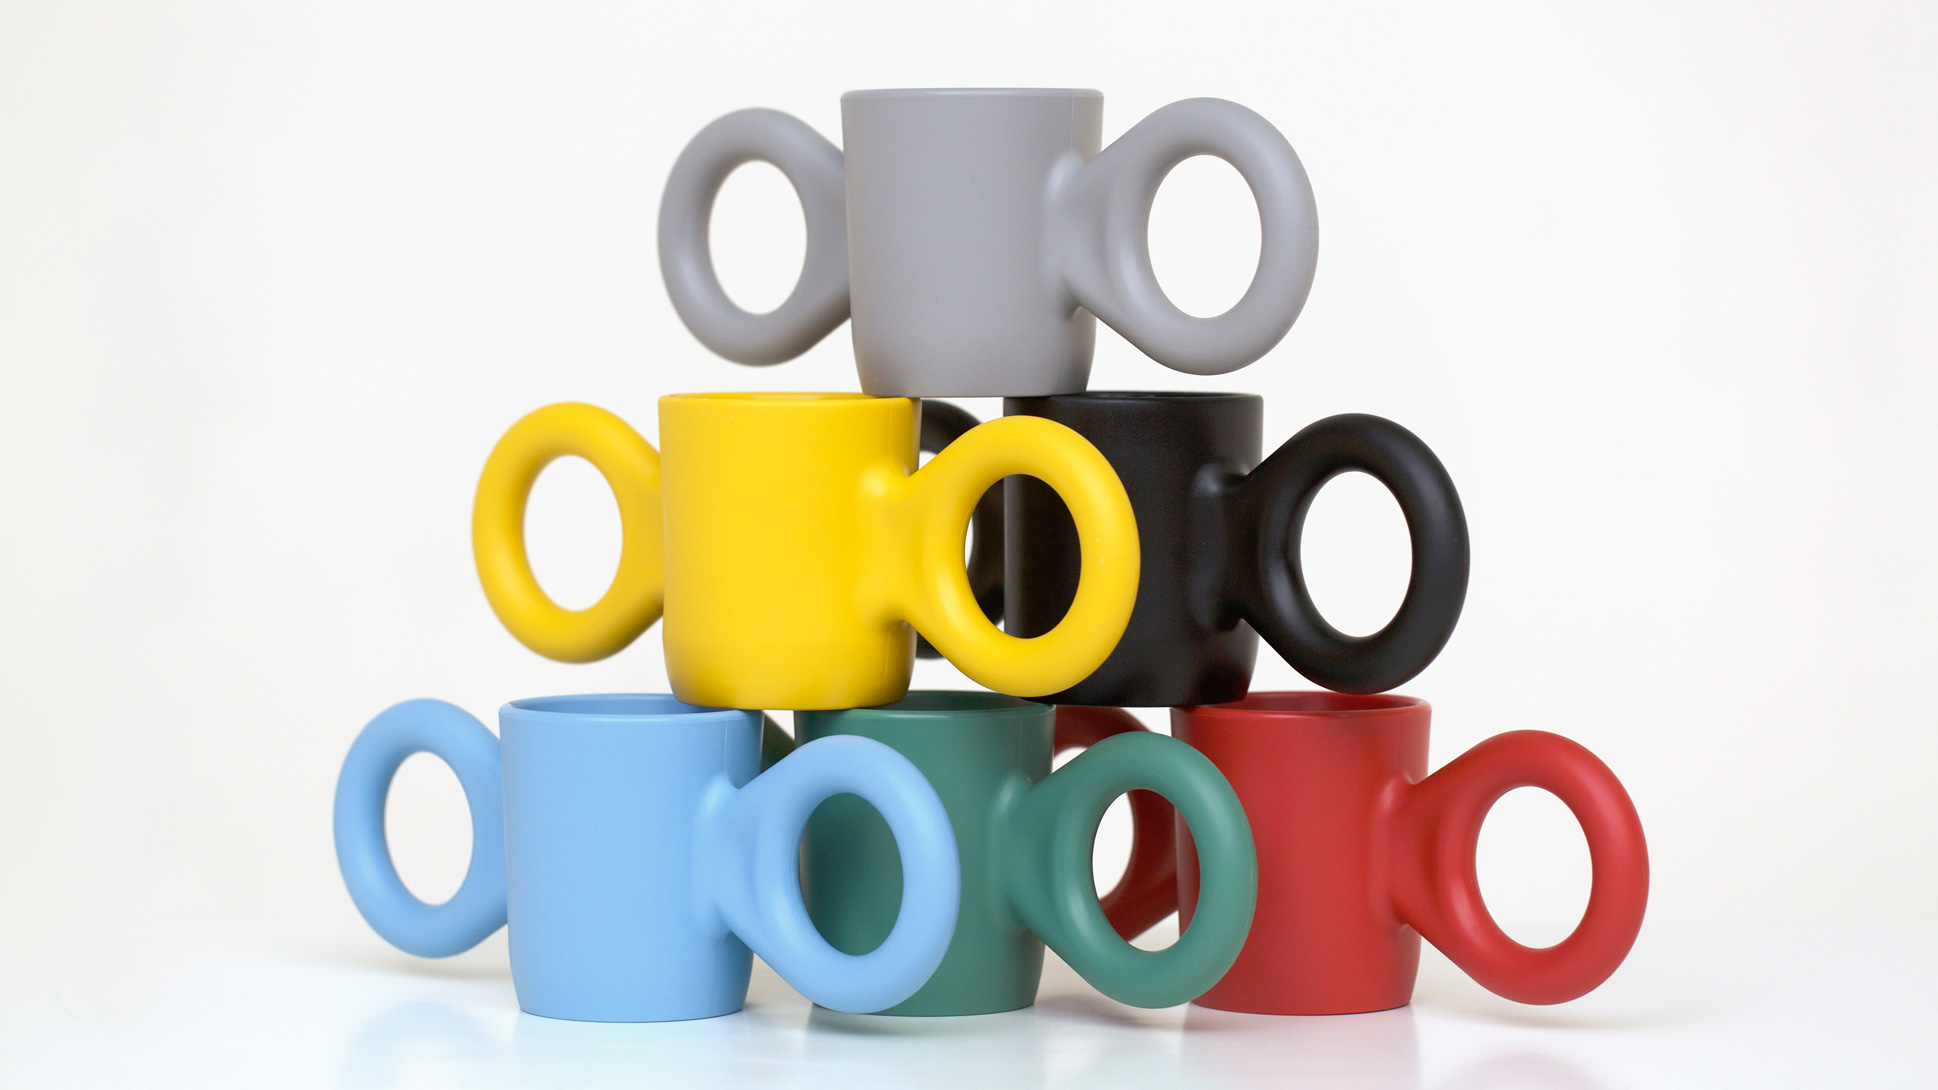 Dombo mug by Richard Hutten